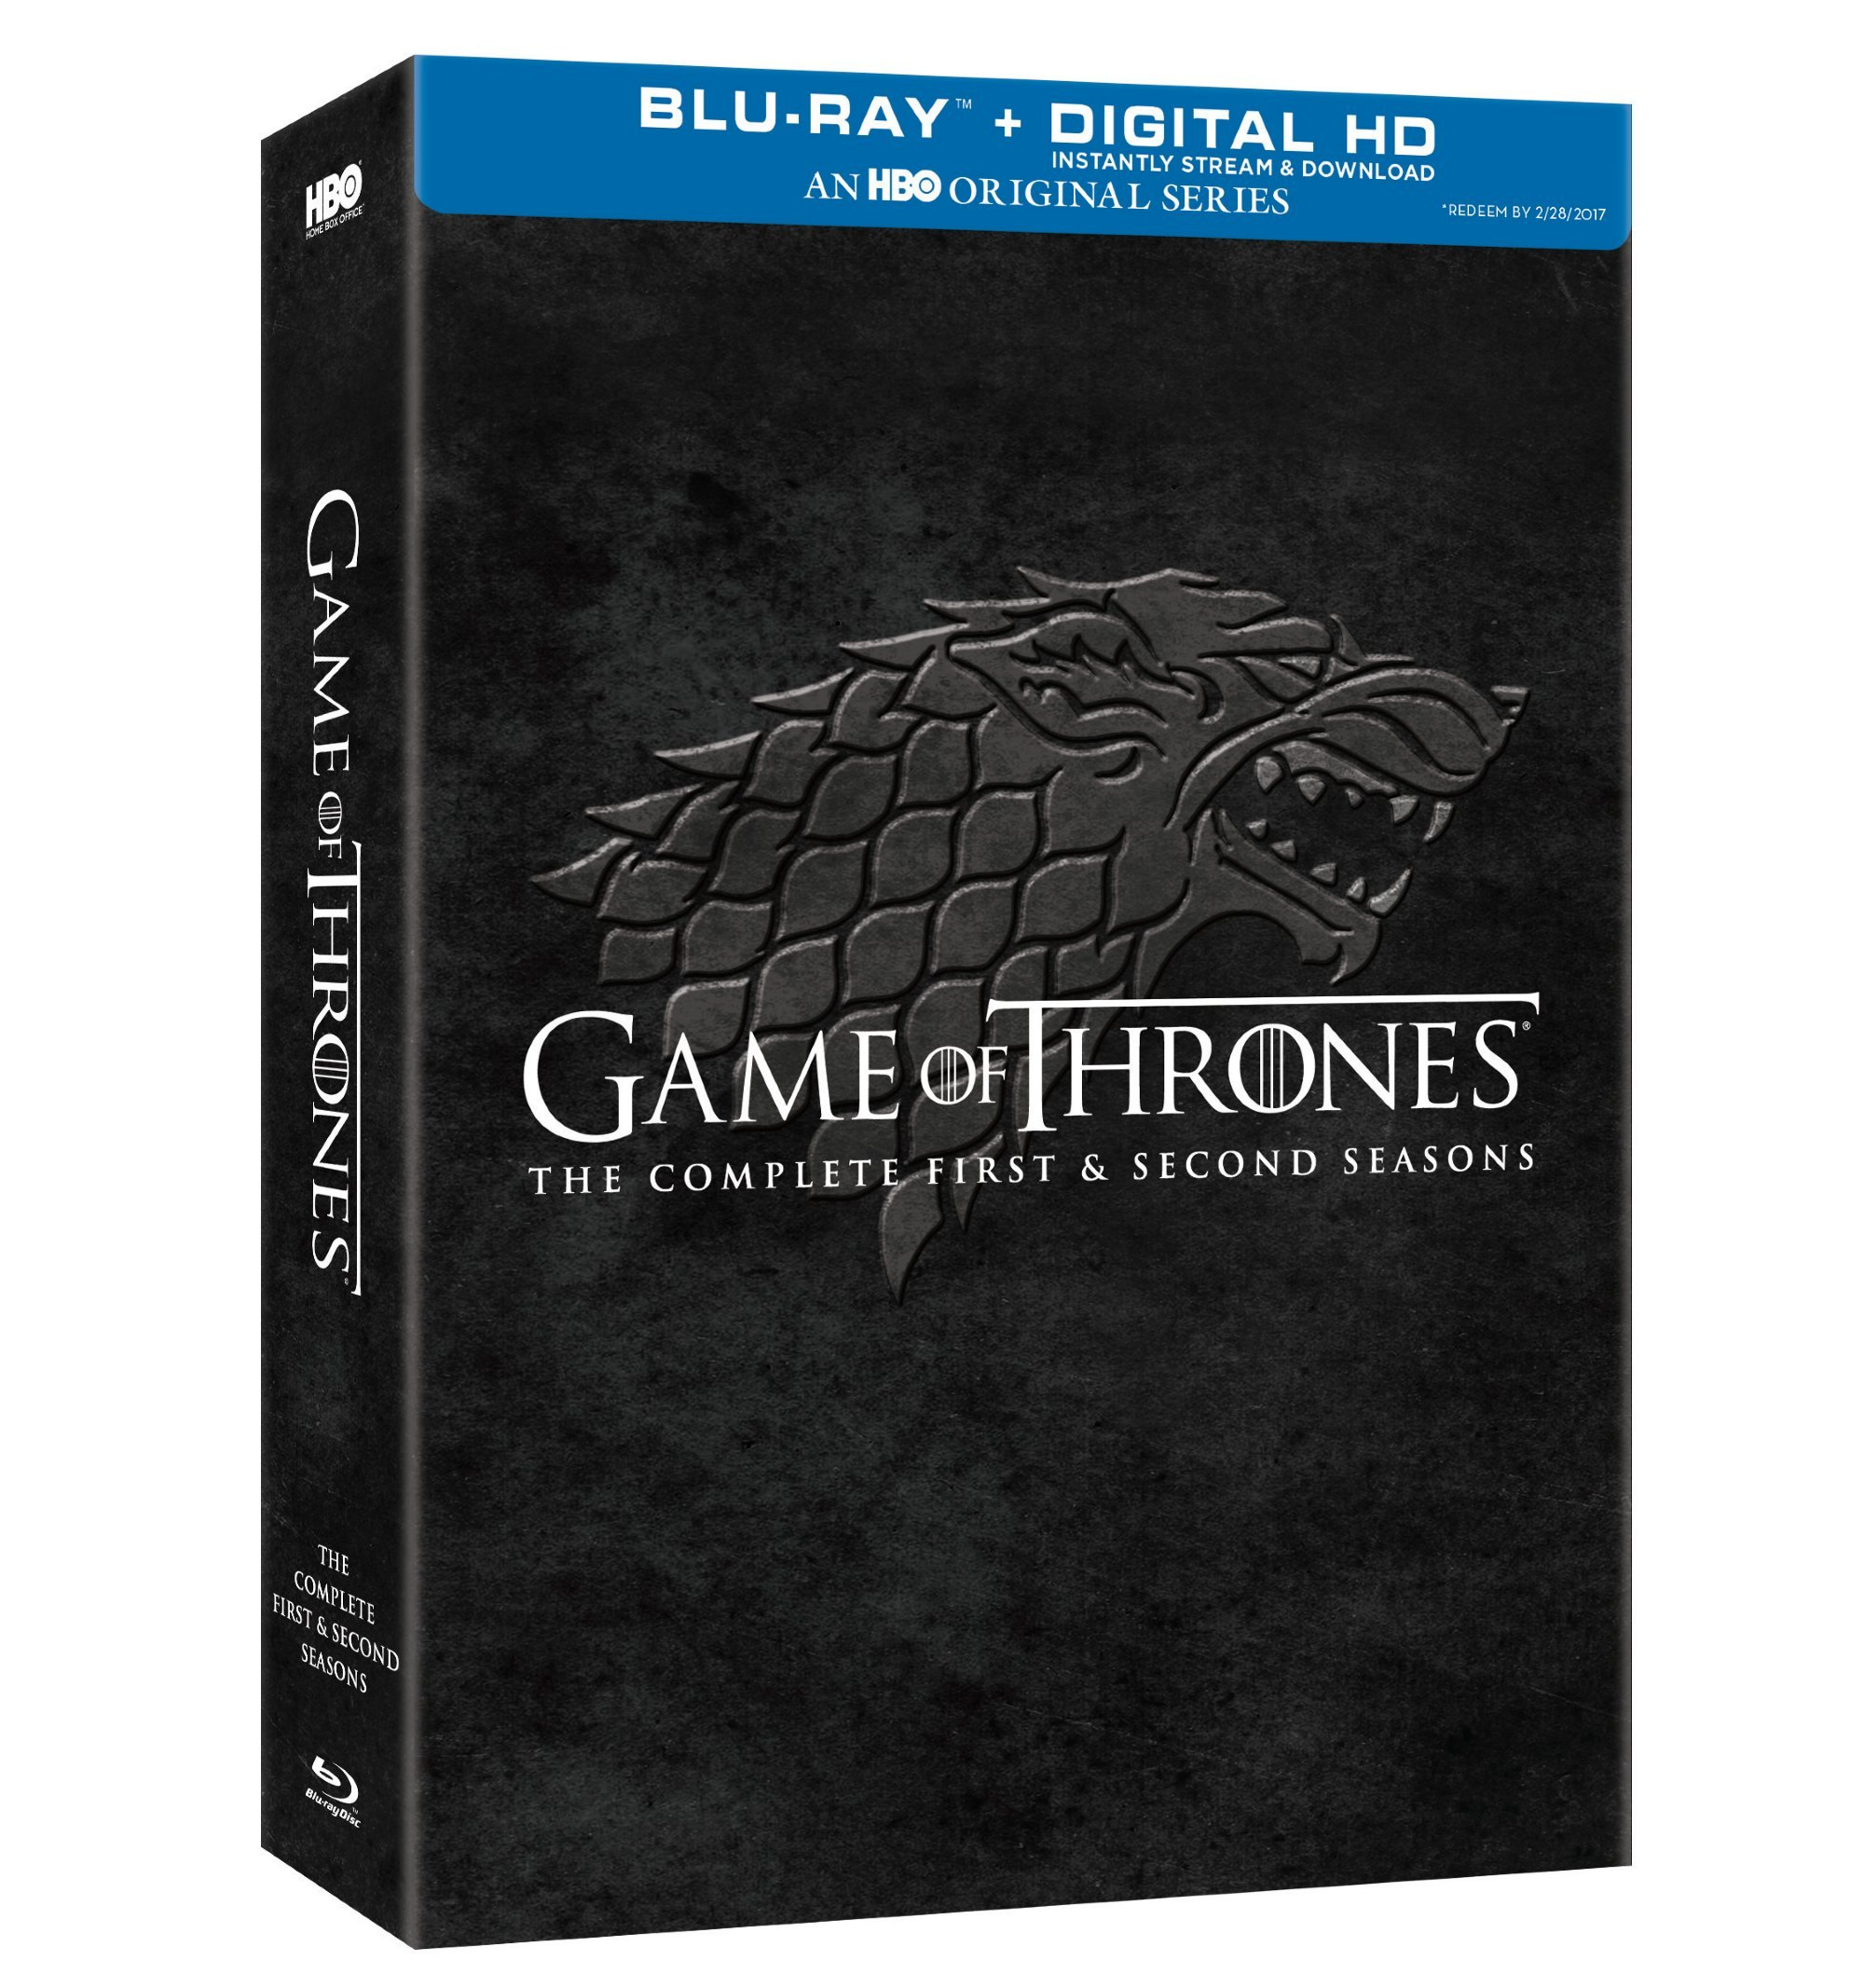 Game of Thrones: Complete First & Second Season [Blu-ray]